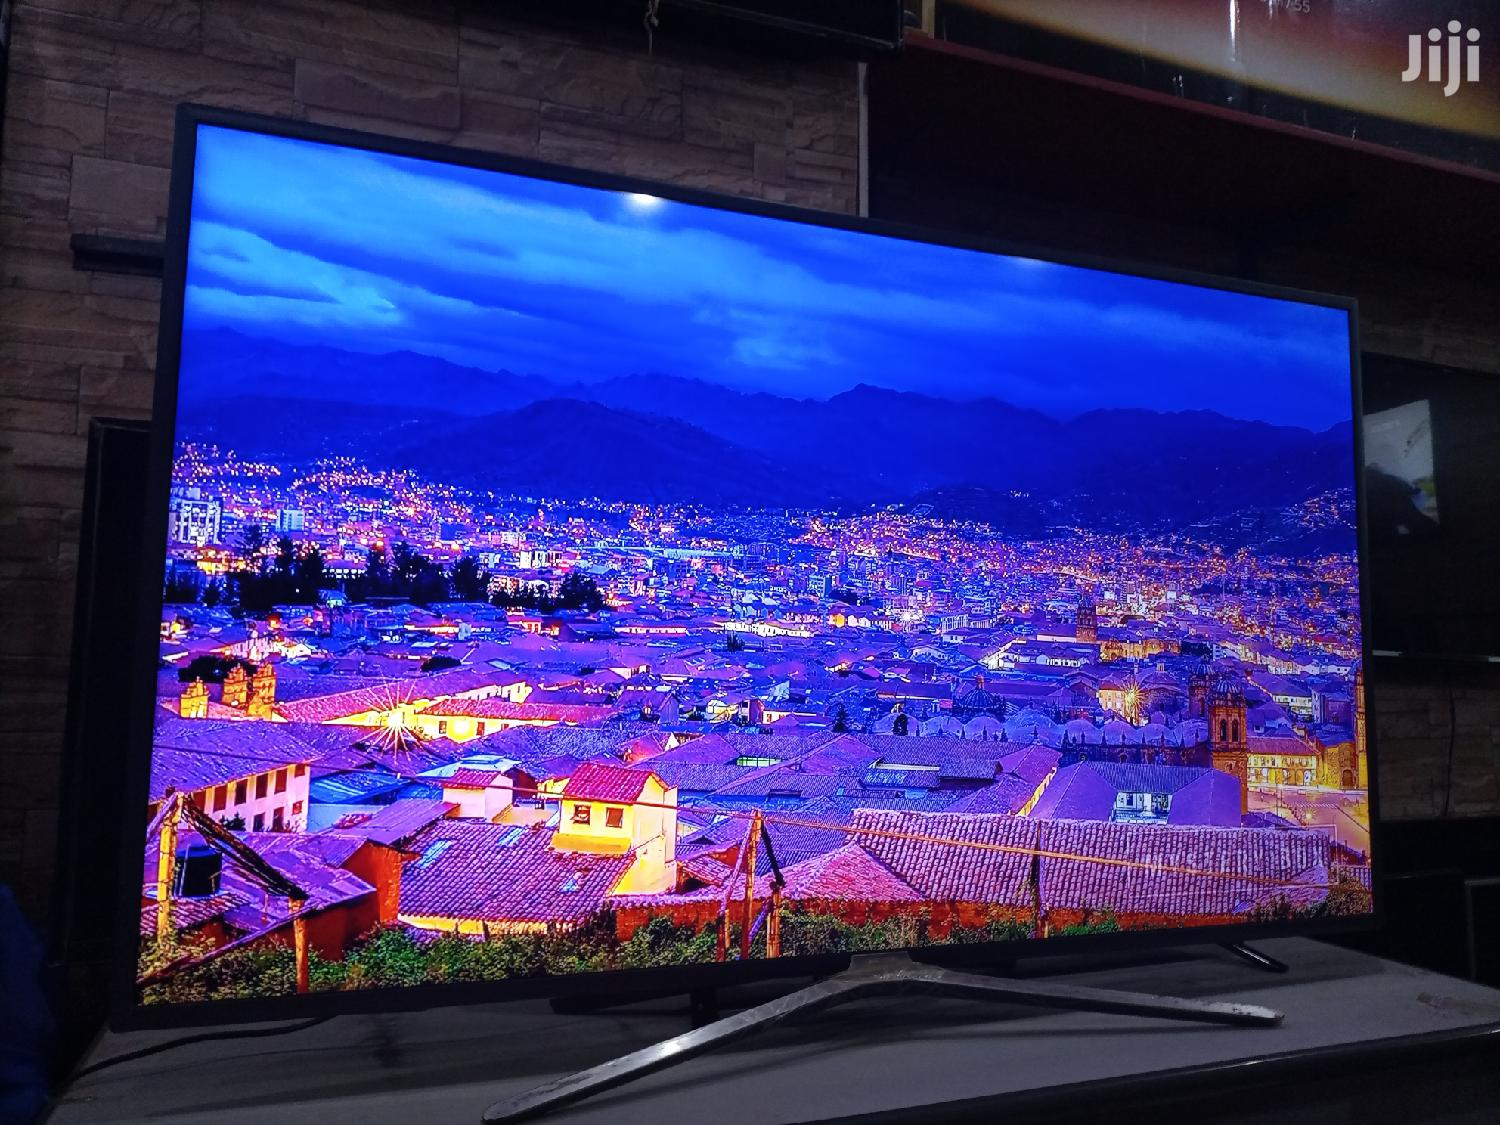 New Samsung 60 Inches Smart 4K Super Slim Flat Screen TV | TV & DVD Equipment for sale in Kampala, Central Region, Uganda